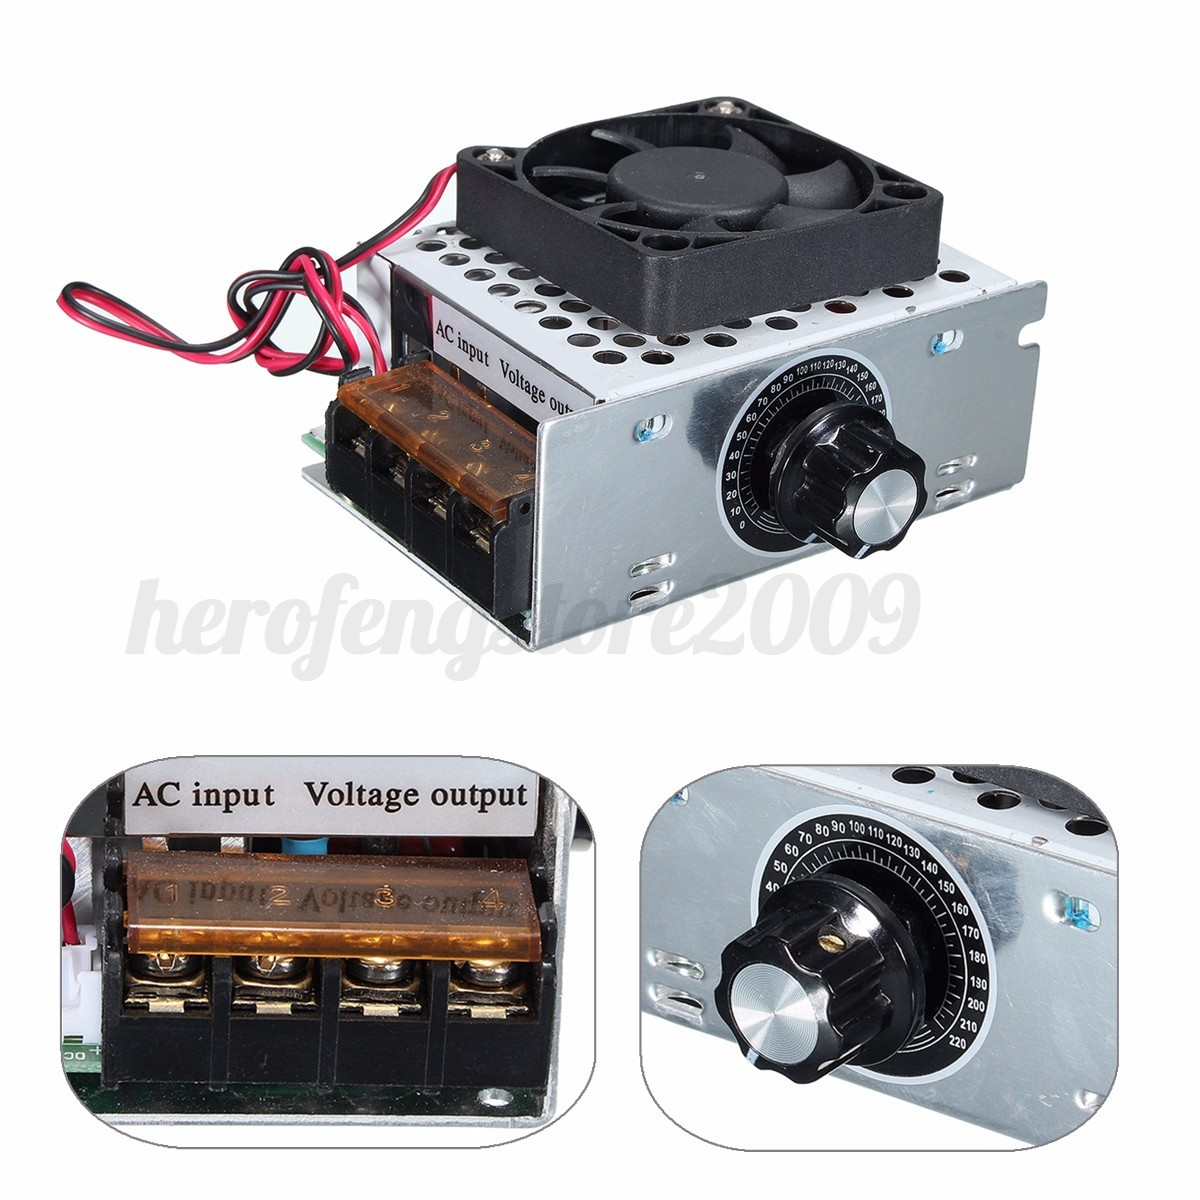 Ac 220v 4000w scr variable voltage regulator motor speed Speed control for ac motor